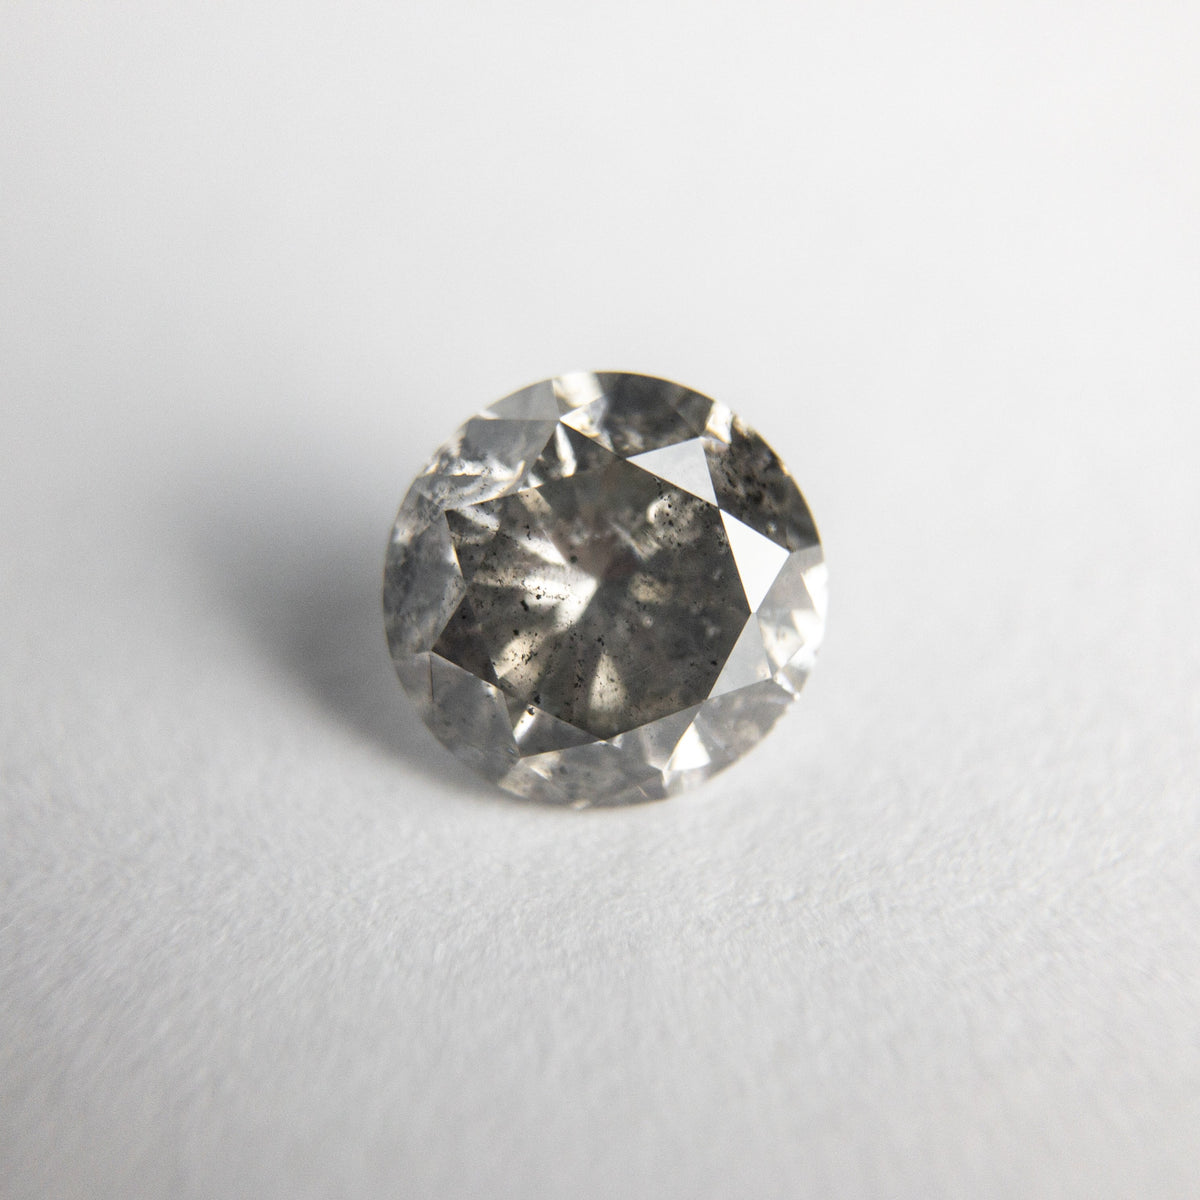 0.88ct 6.05x5.94x3.80mm Round Brilliant 18362-01